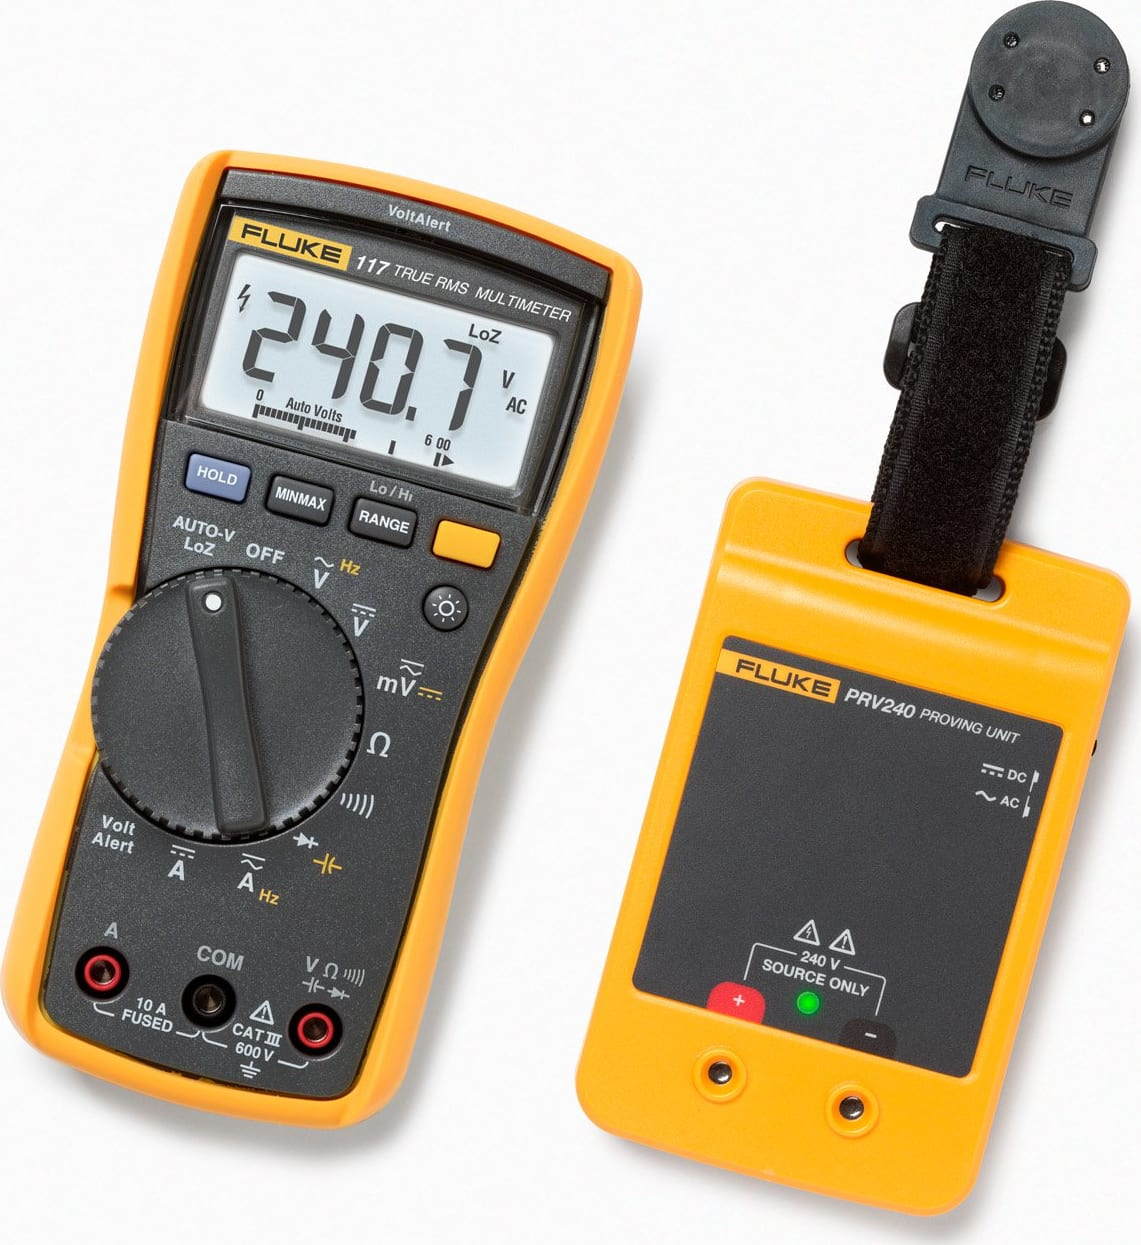 Fluke PRV240 Proving Unit Kit with F-117